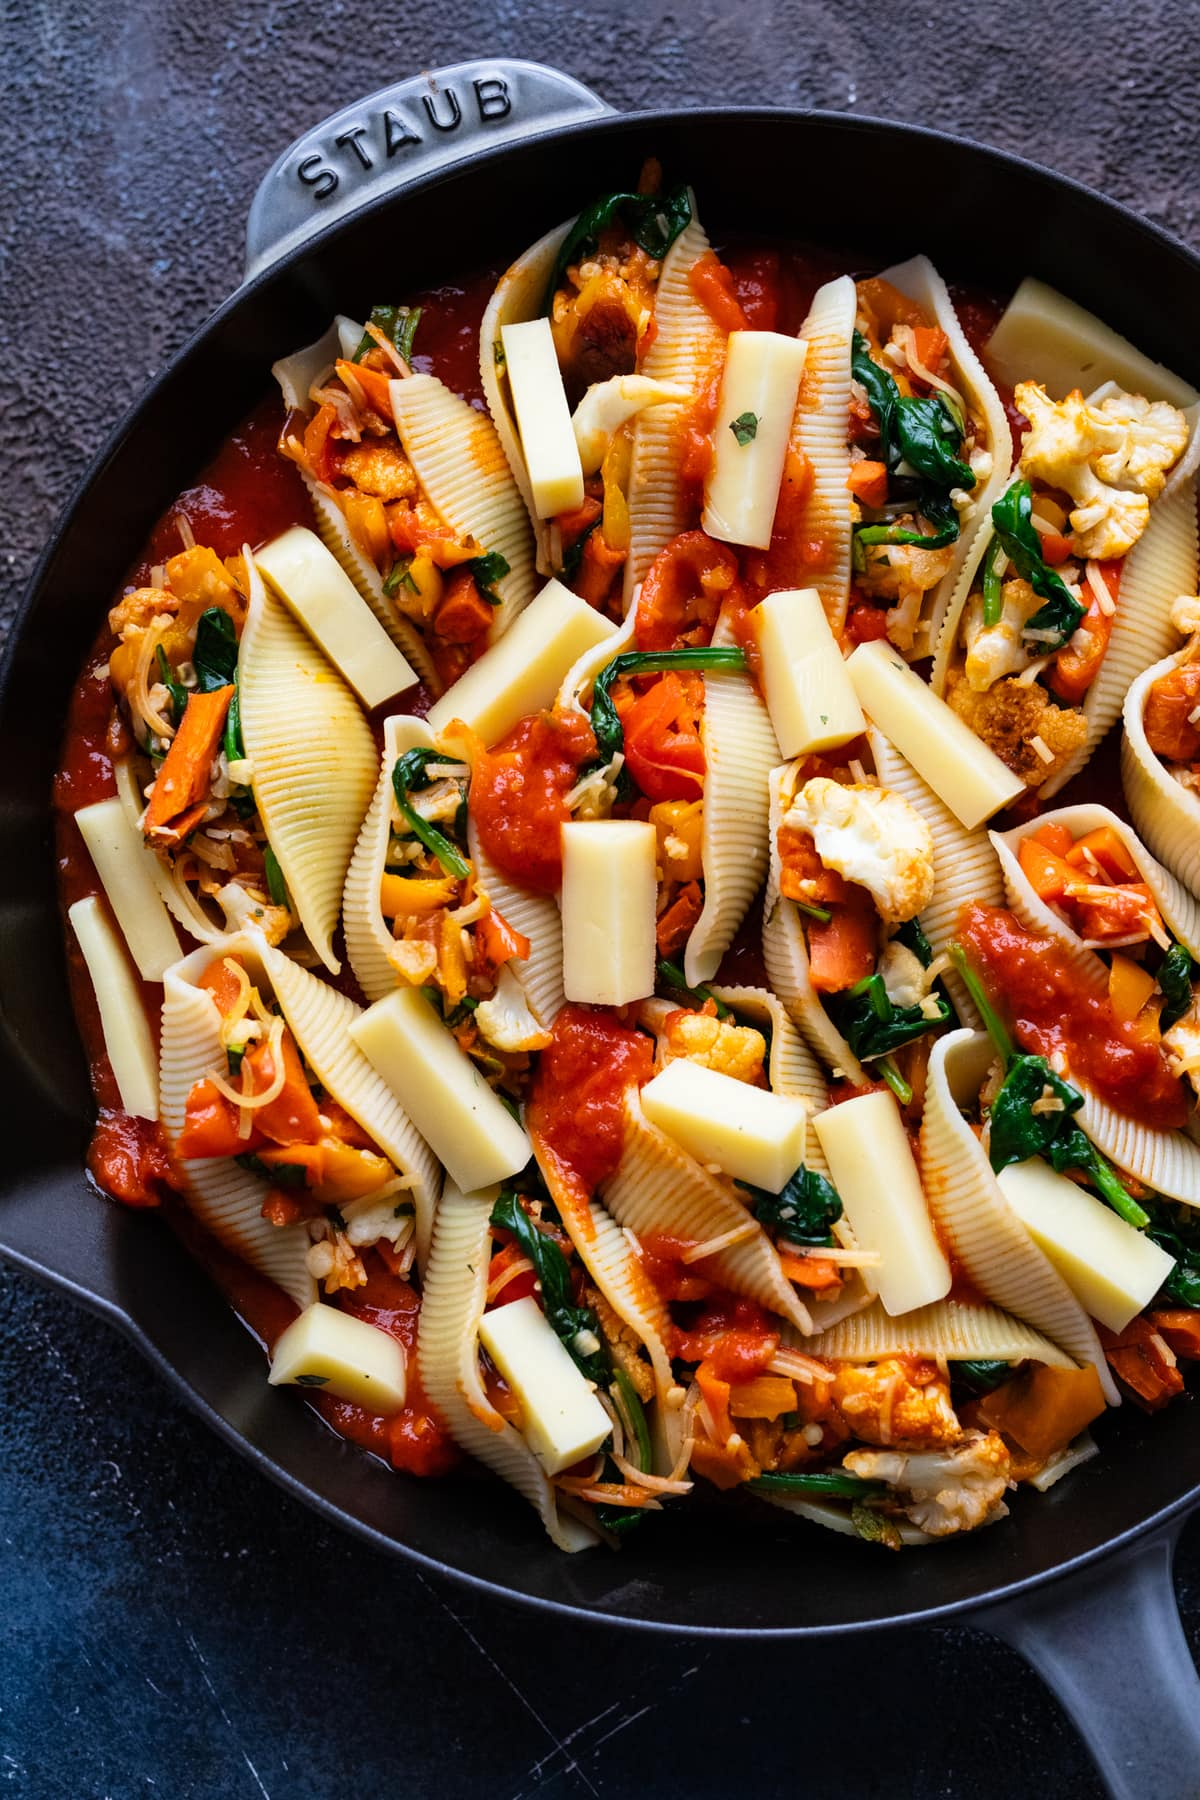 Vegetarian stuffed shells and pieces of cheese in a cast iron pan.